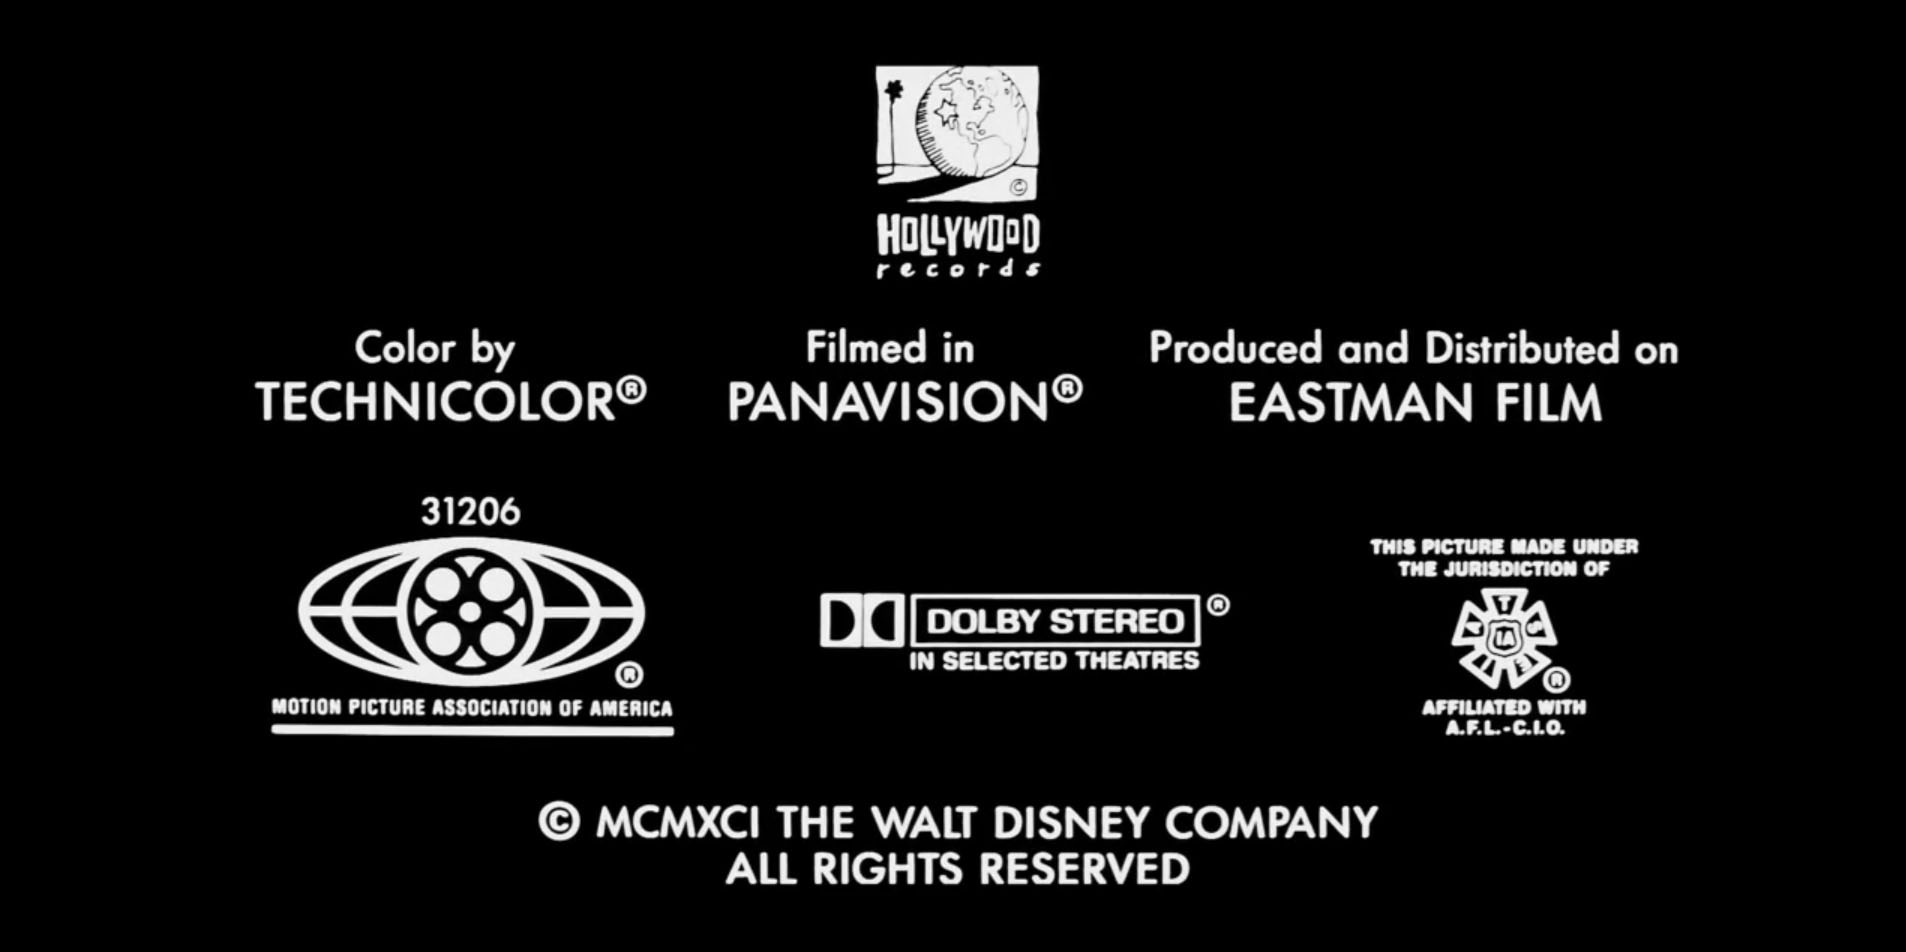 dolby stereo in selected theatres logo 21062 loadtve